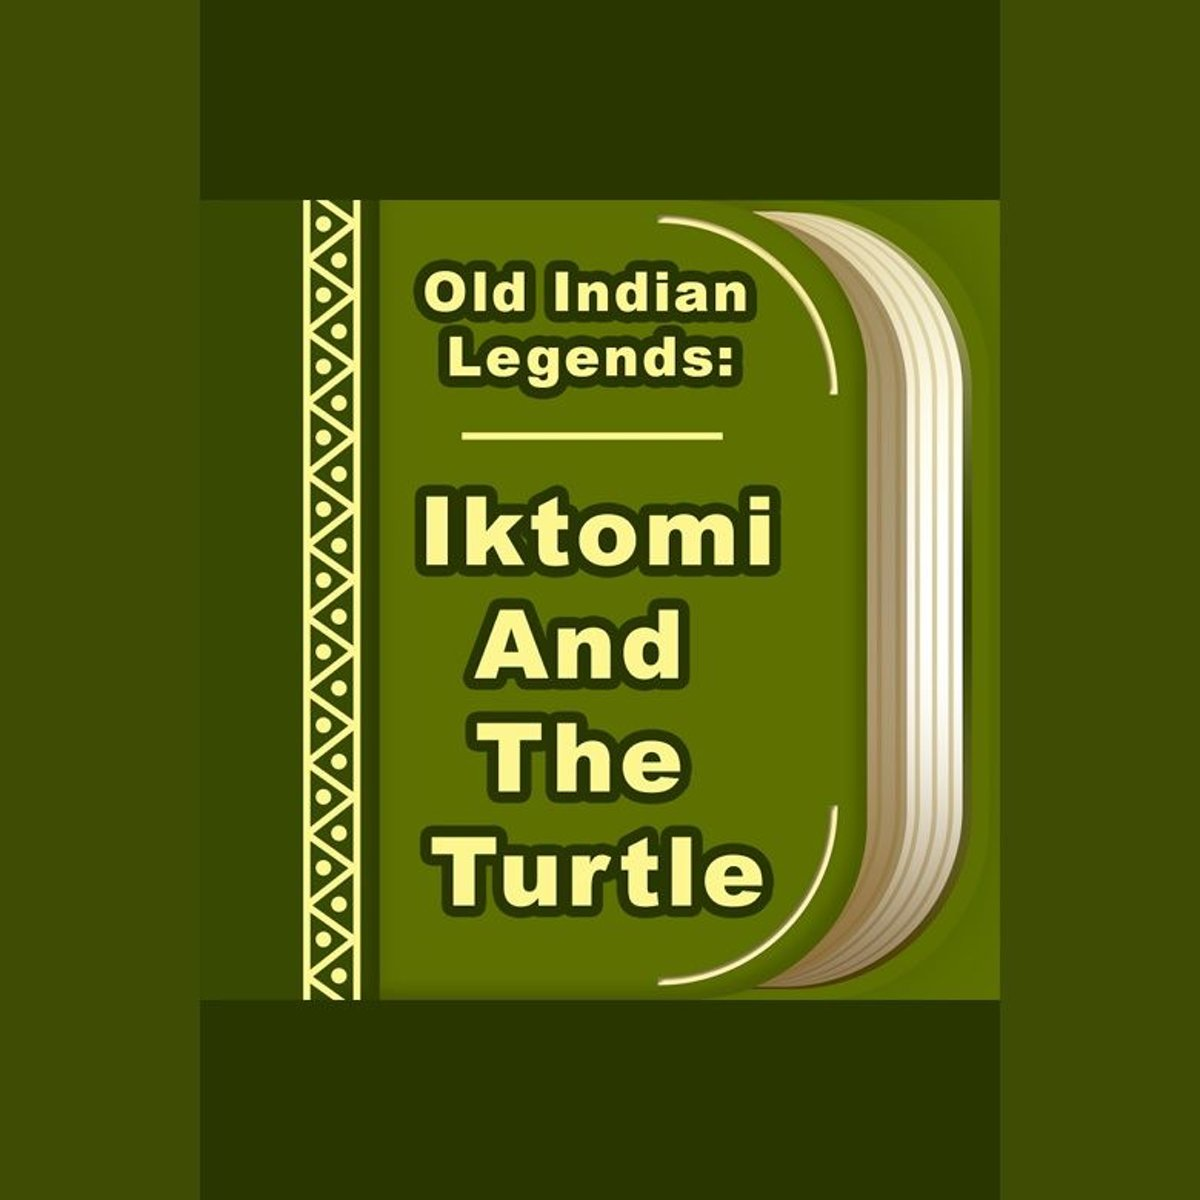 Iktomi And The Turtle